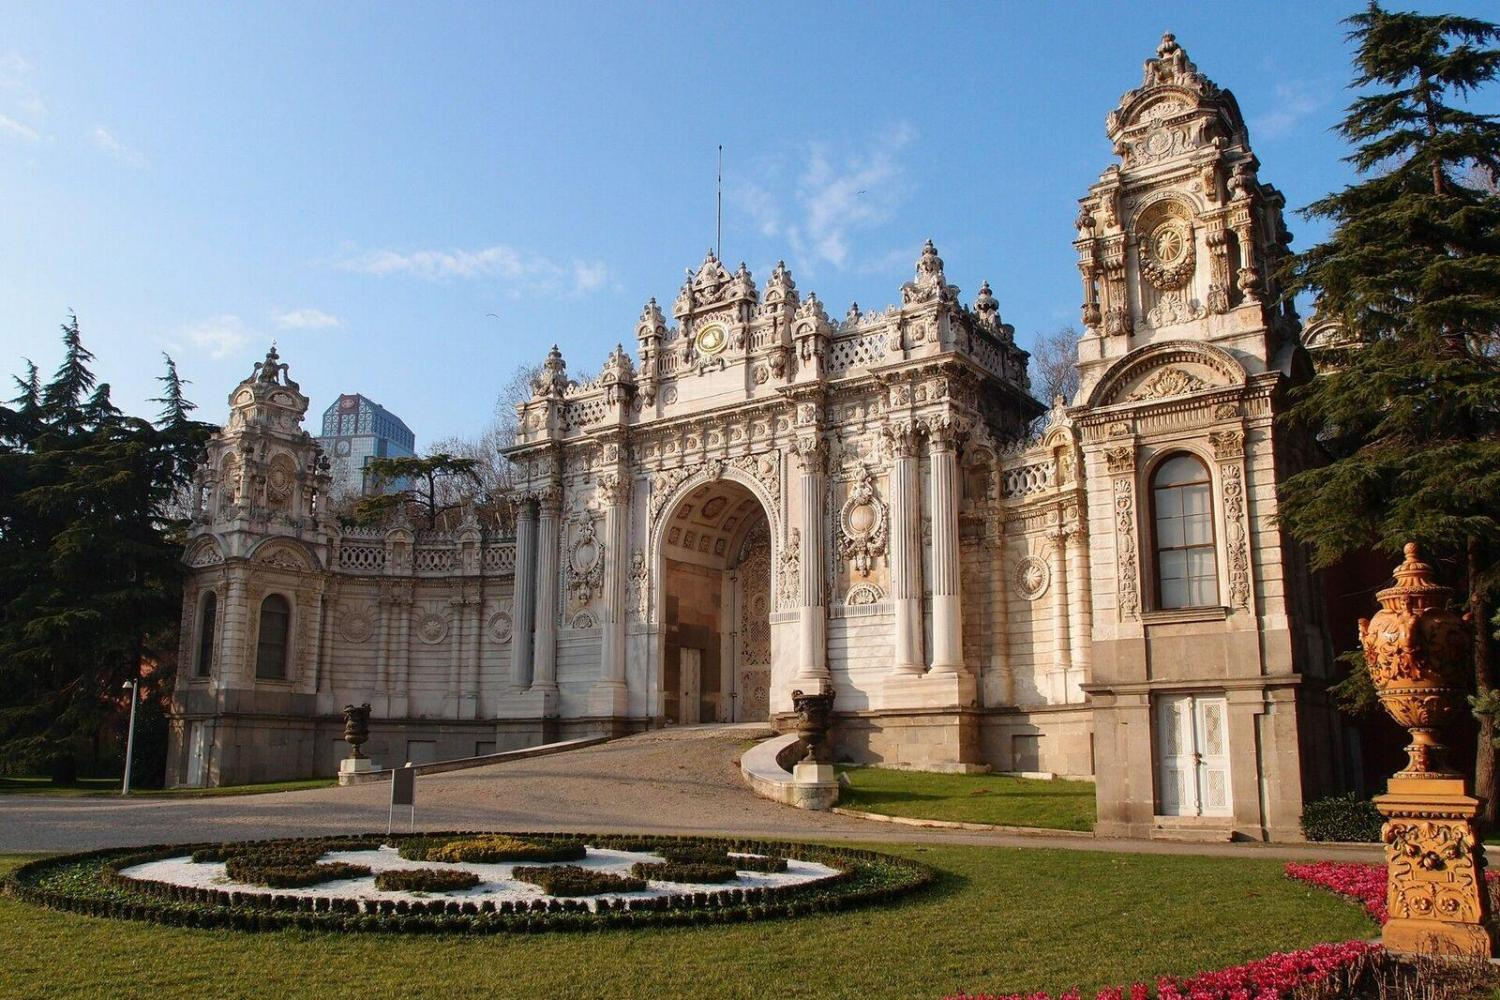 Dolmabahce Palace and Two Continents (Europe to Asia in 2 minutes)